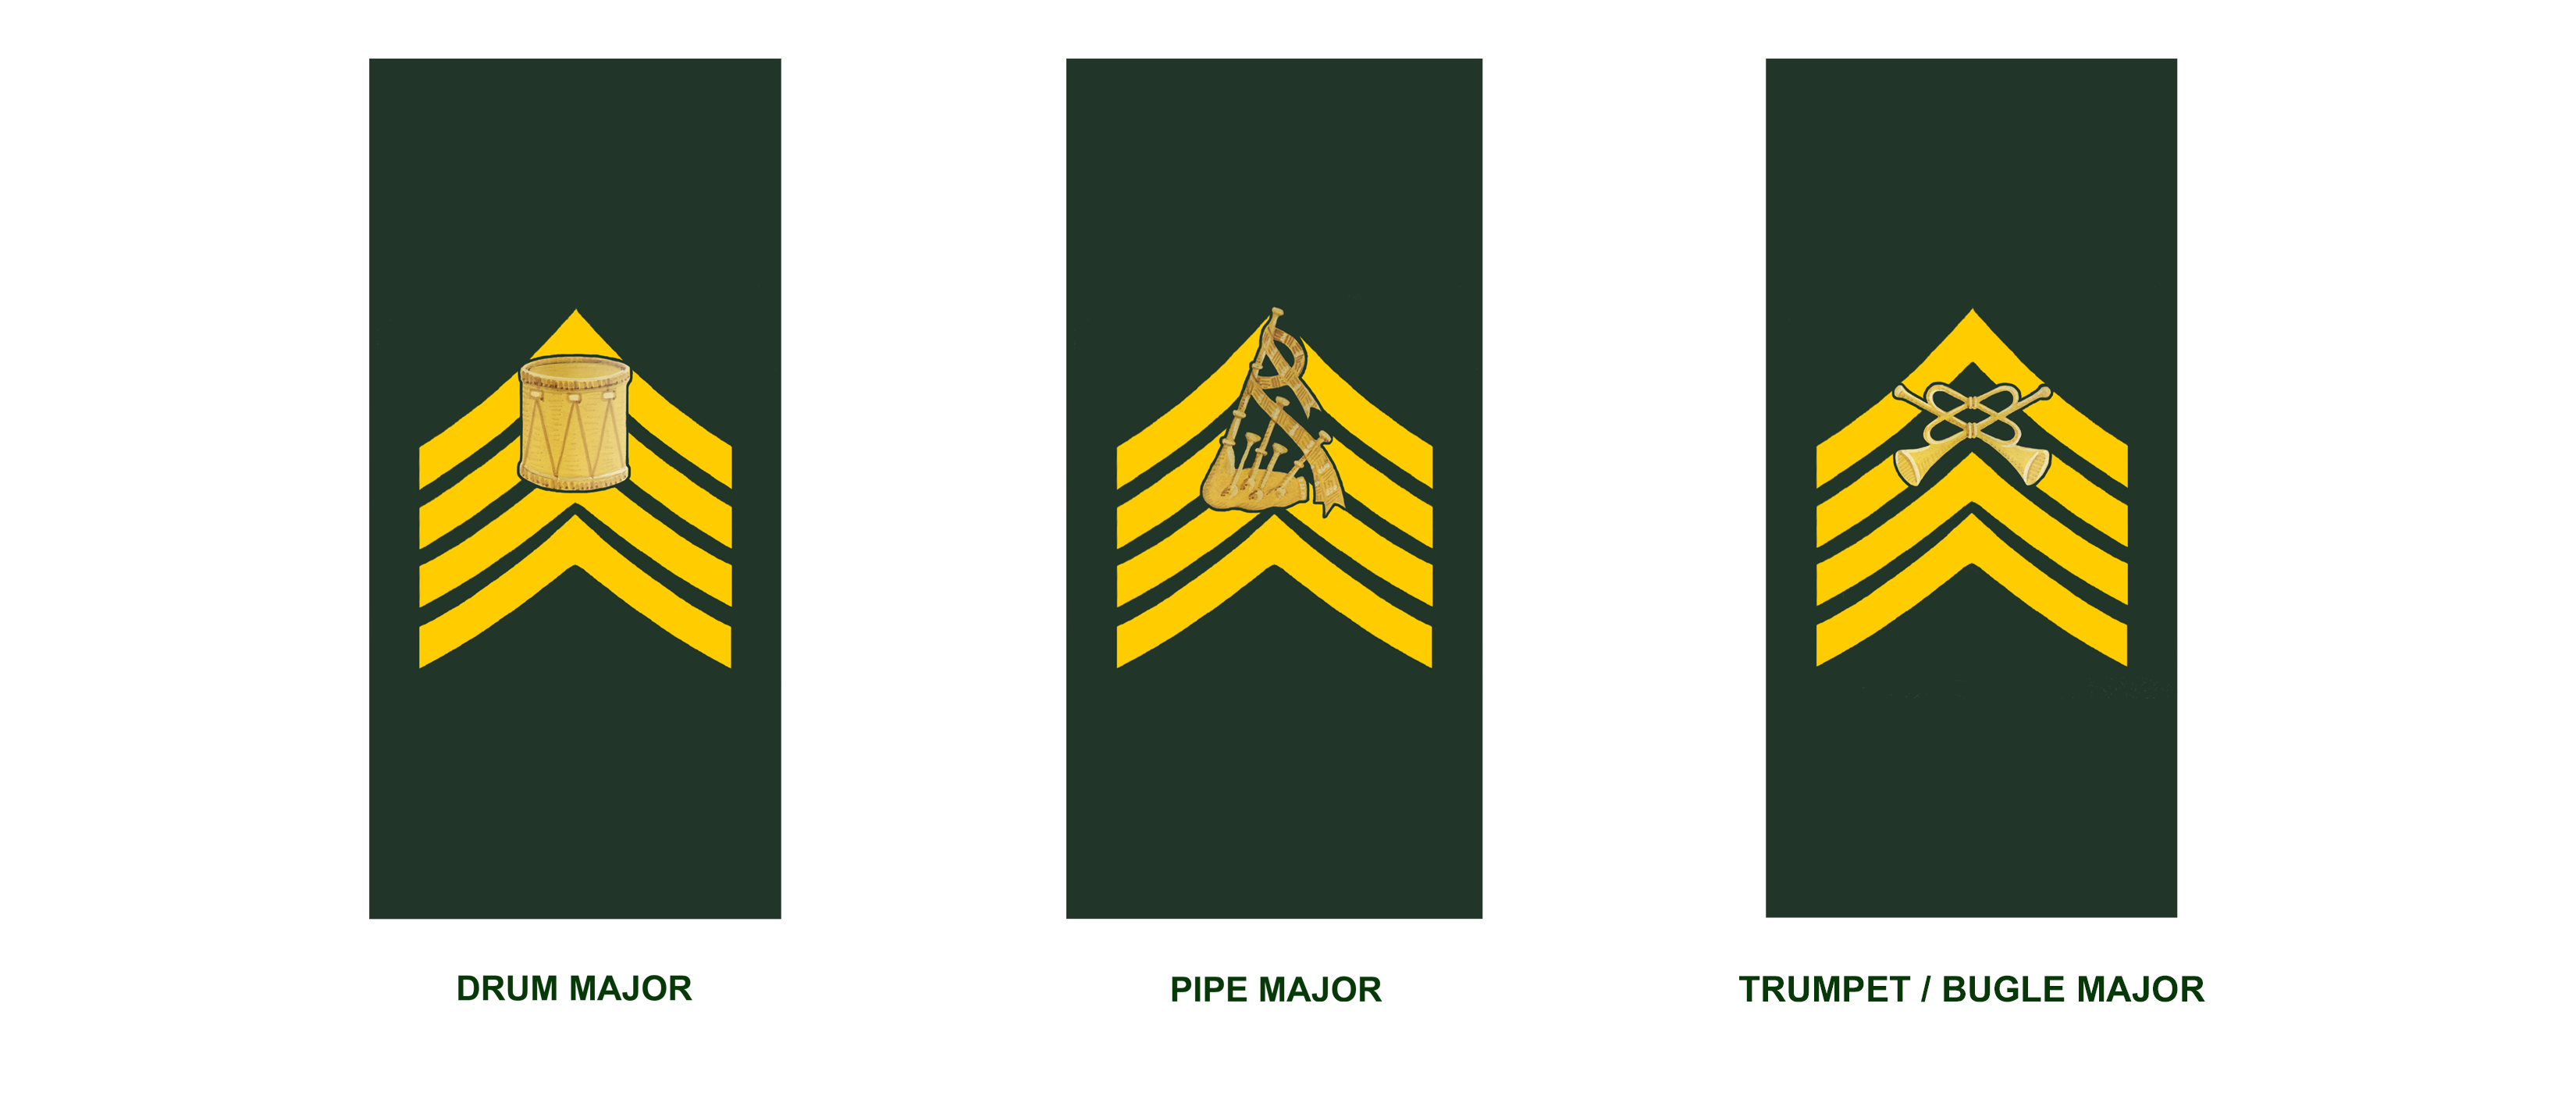 Appointments (in descending order): Drum Major, Pipe Major, Trumpet/Bugle Major